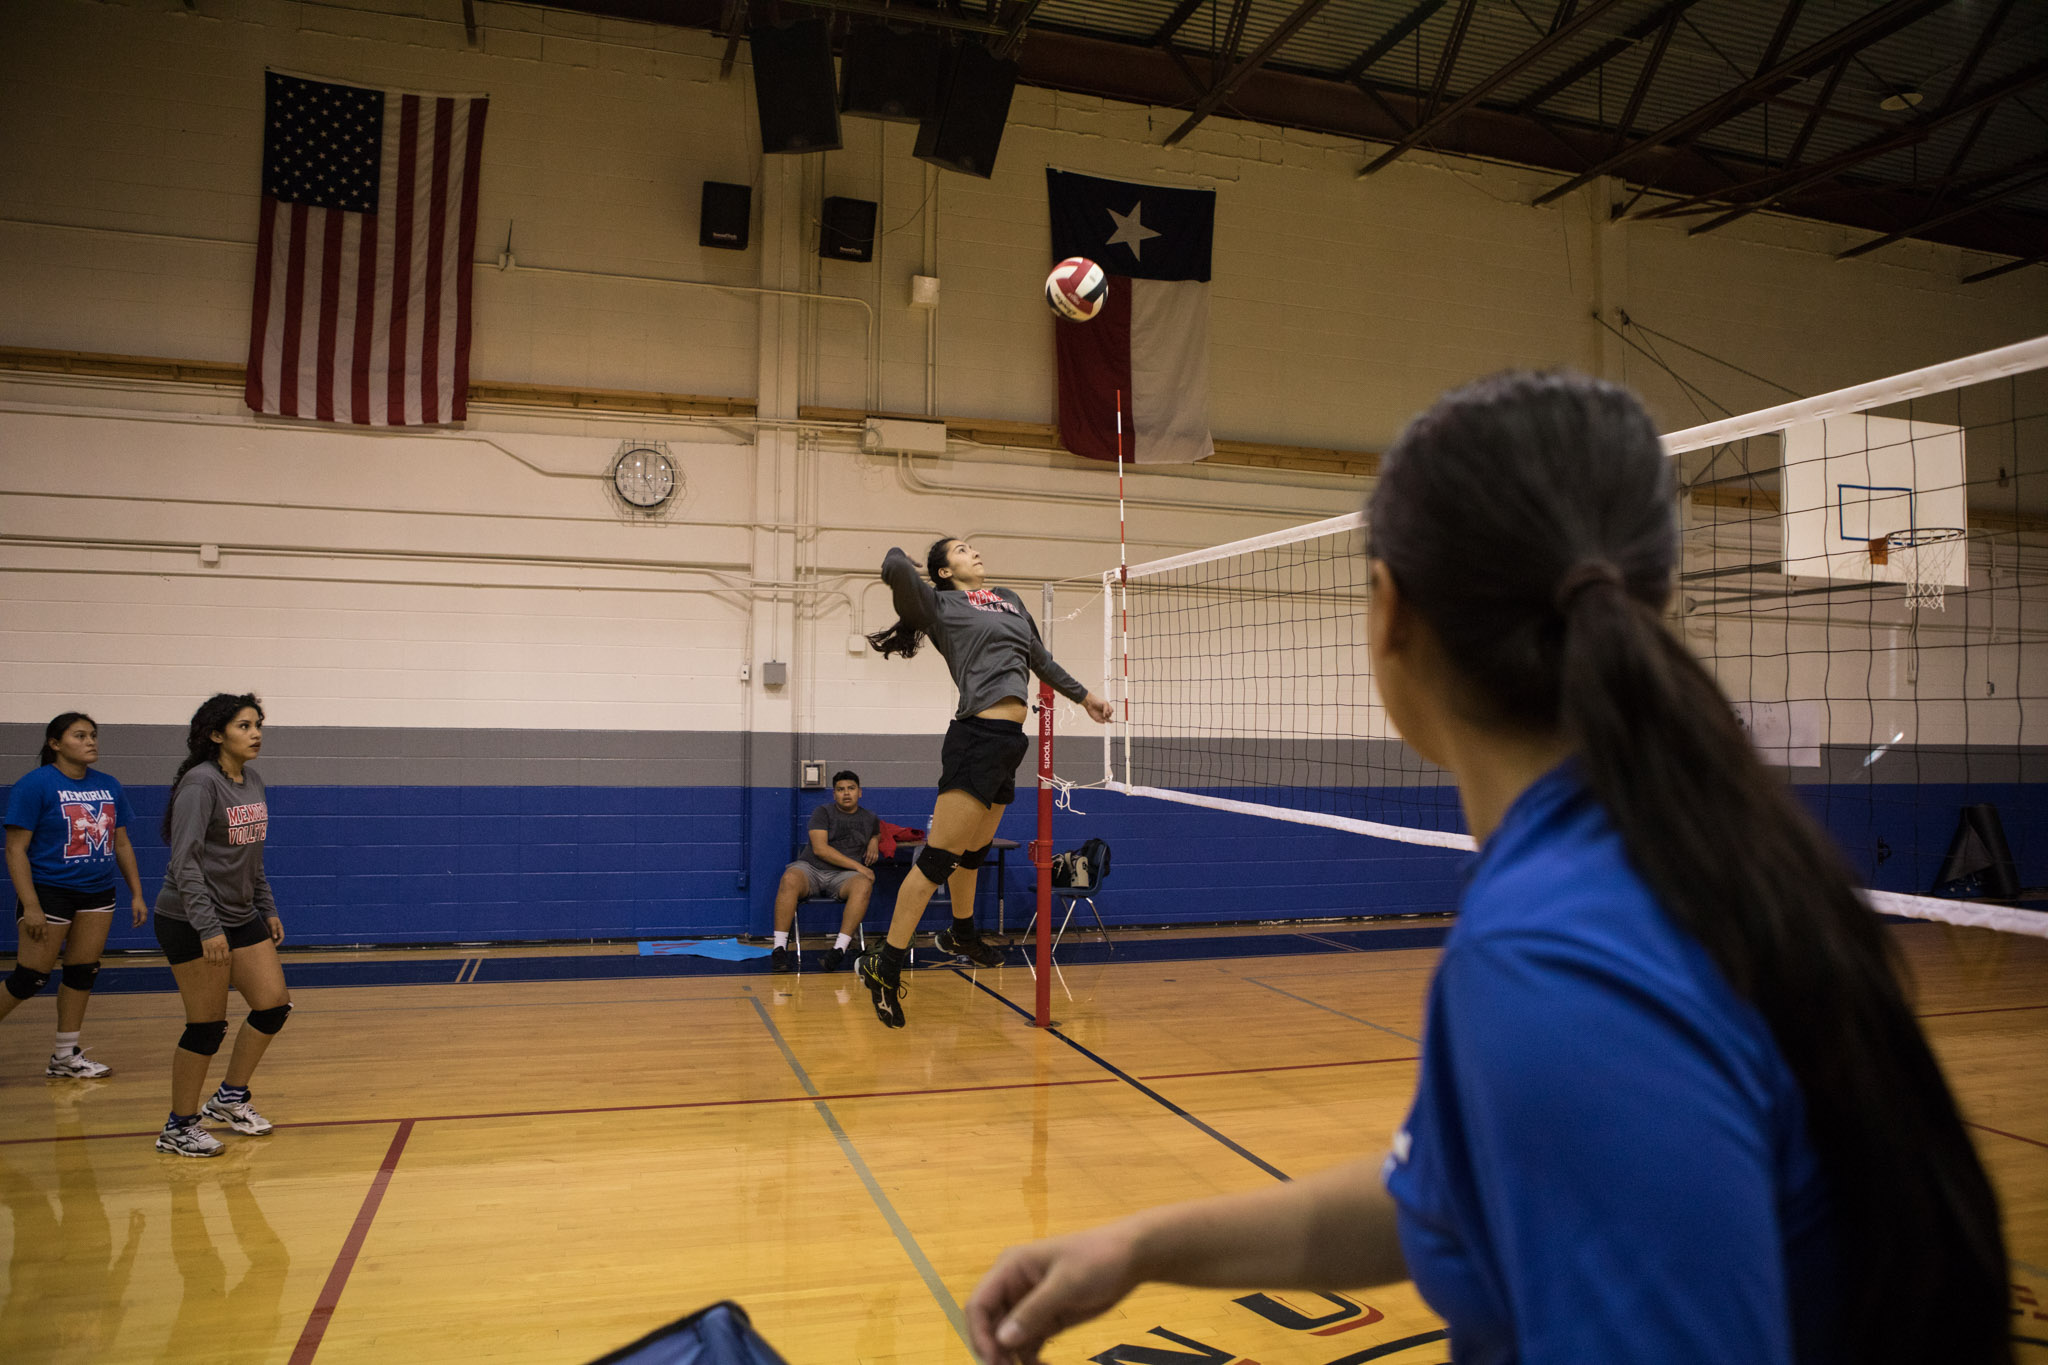 Tiffany Lopez spikes the volleyball during practice at Memorial High School as her coach Samantha Mendez looks on.